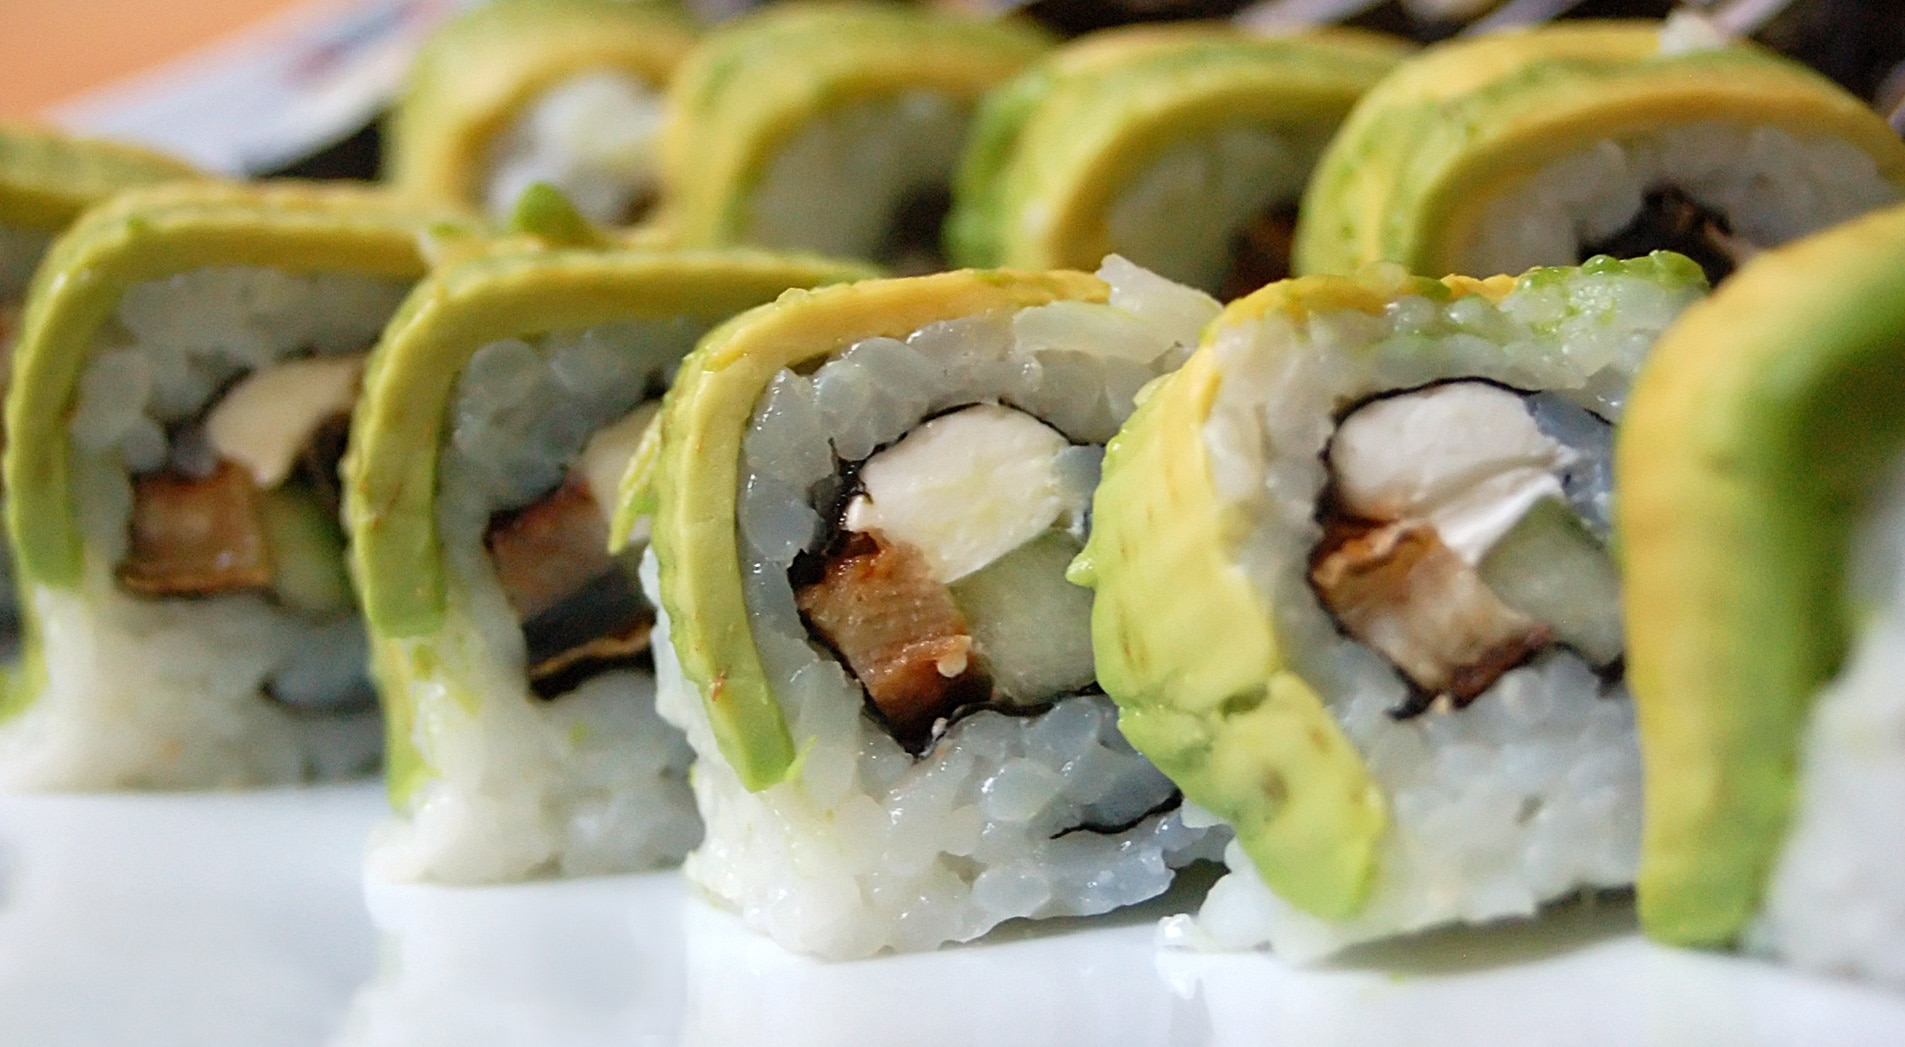 We already have a glut of sushi | GAYOT's Blog